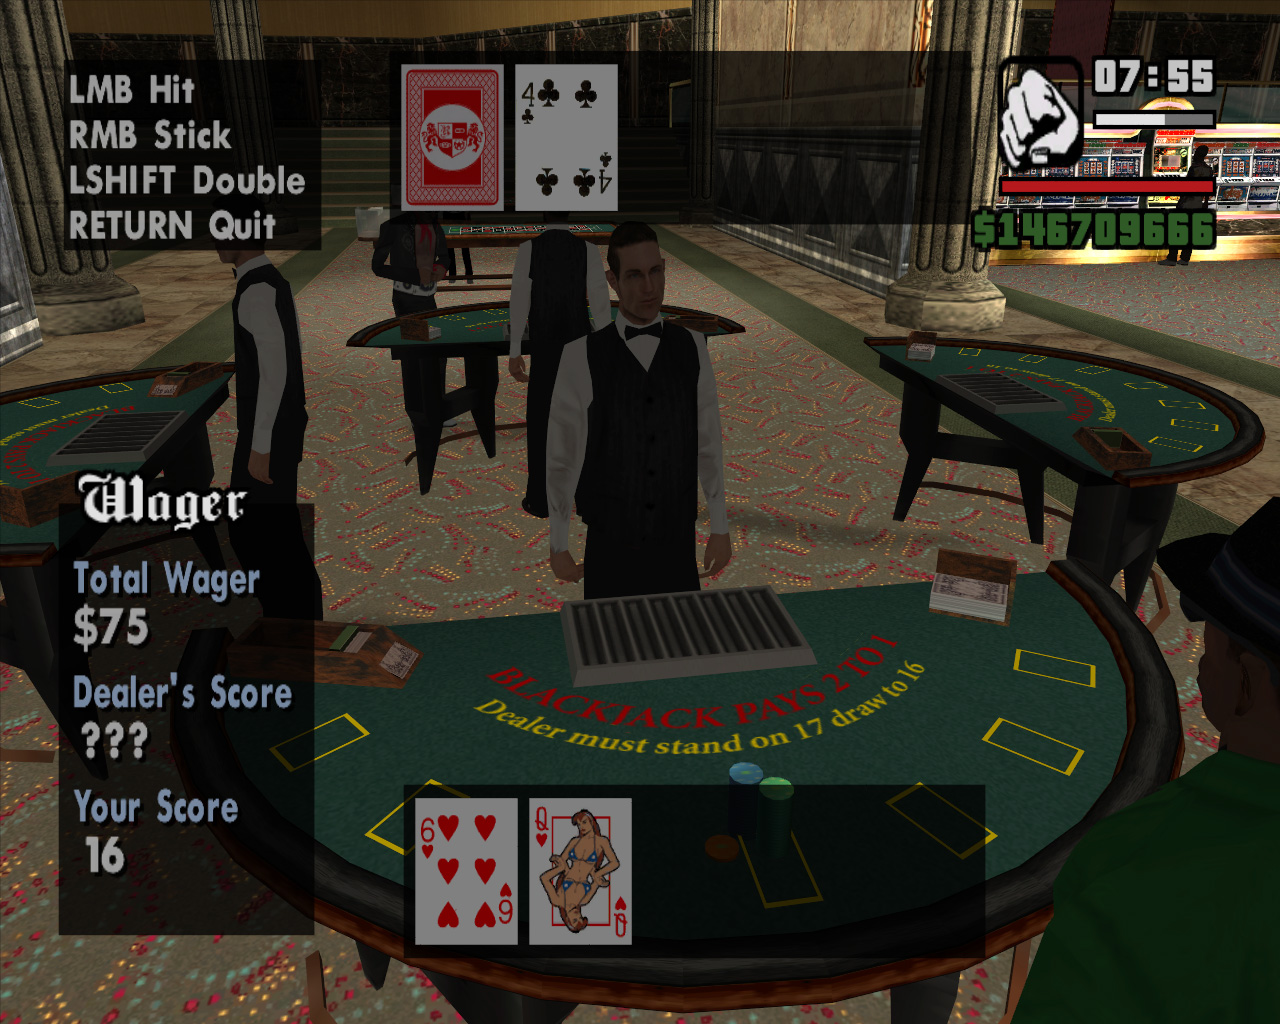 Gta san andreas gambling skill cheat how many world series of poker events are there